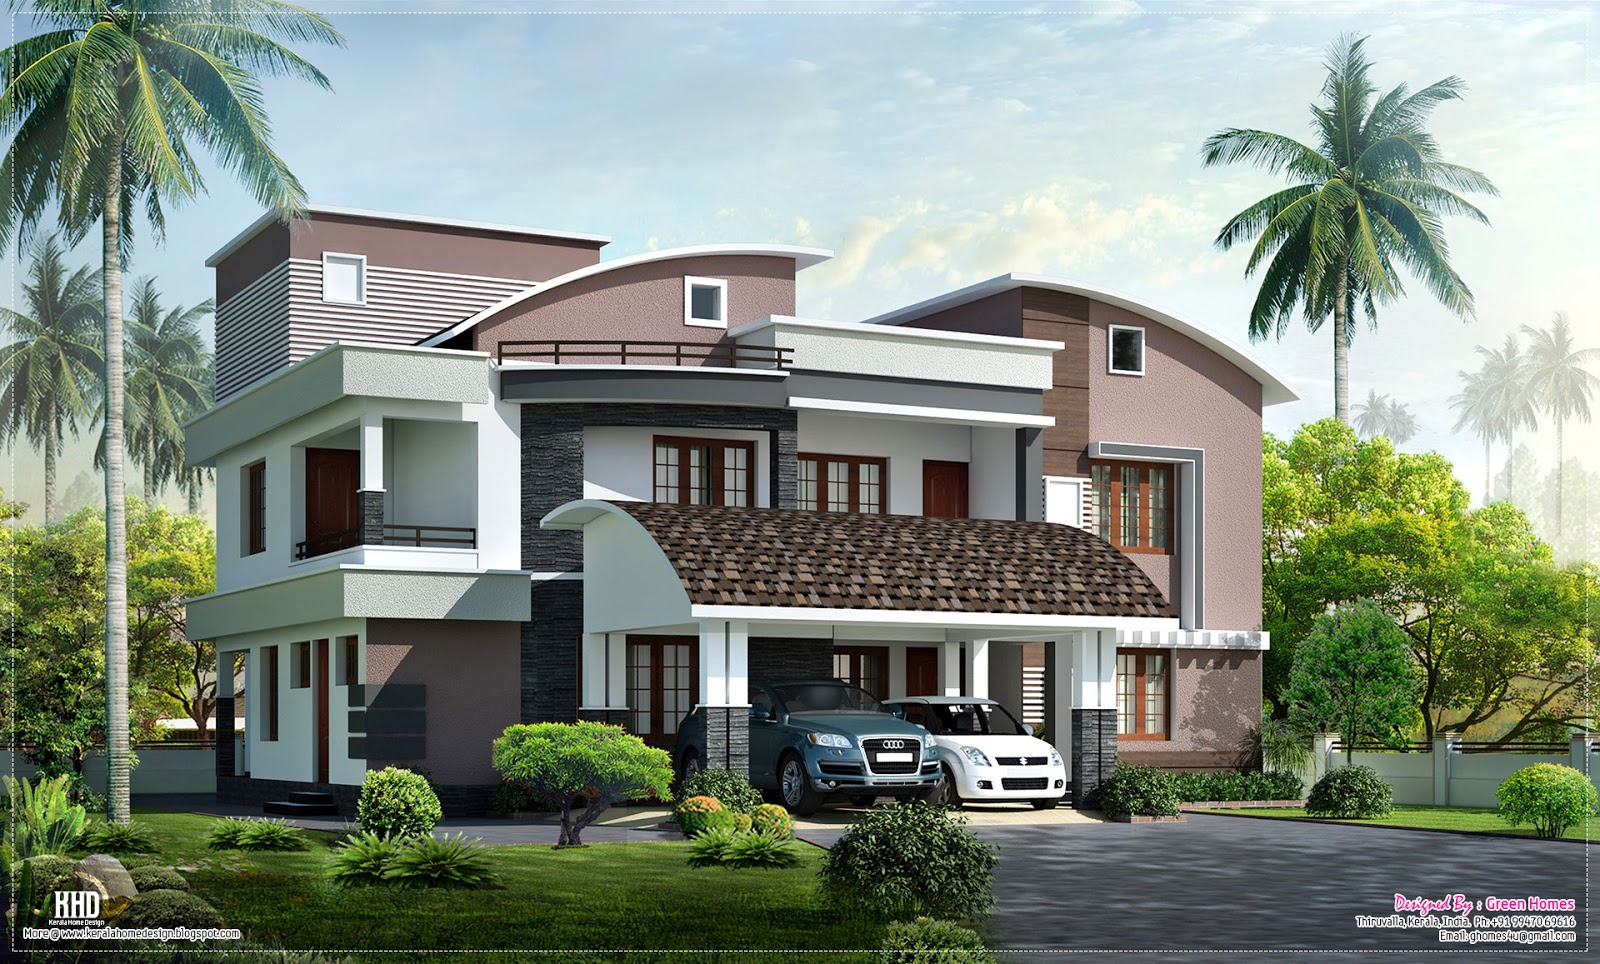 Modern style luxury villa exterior design home kerala plans for Kerala style villa plans